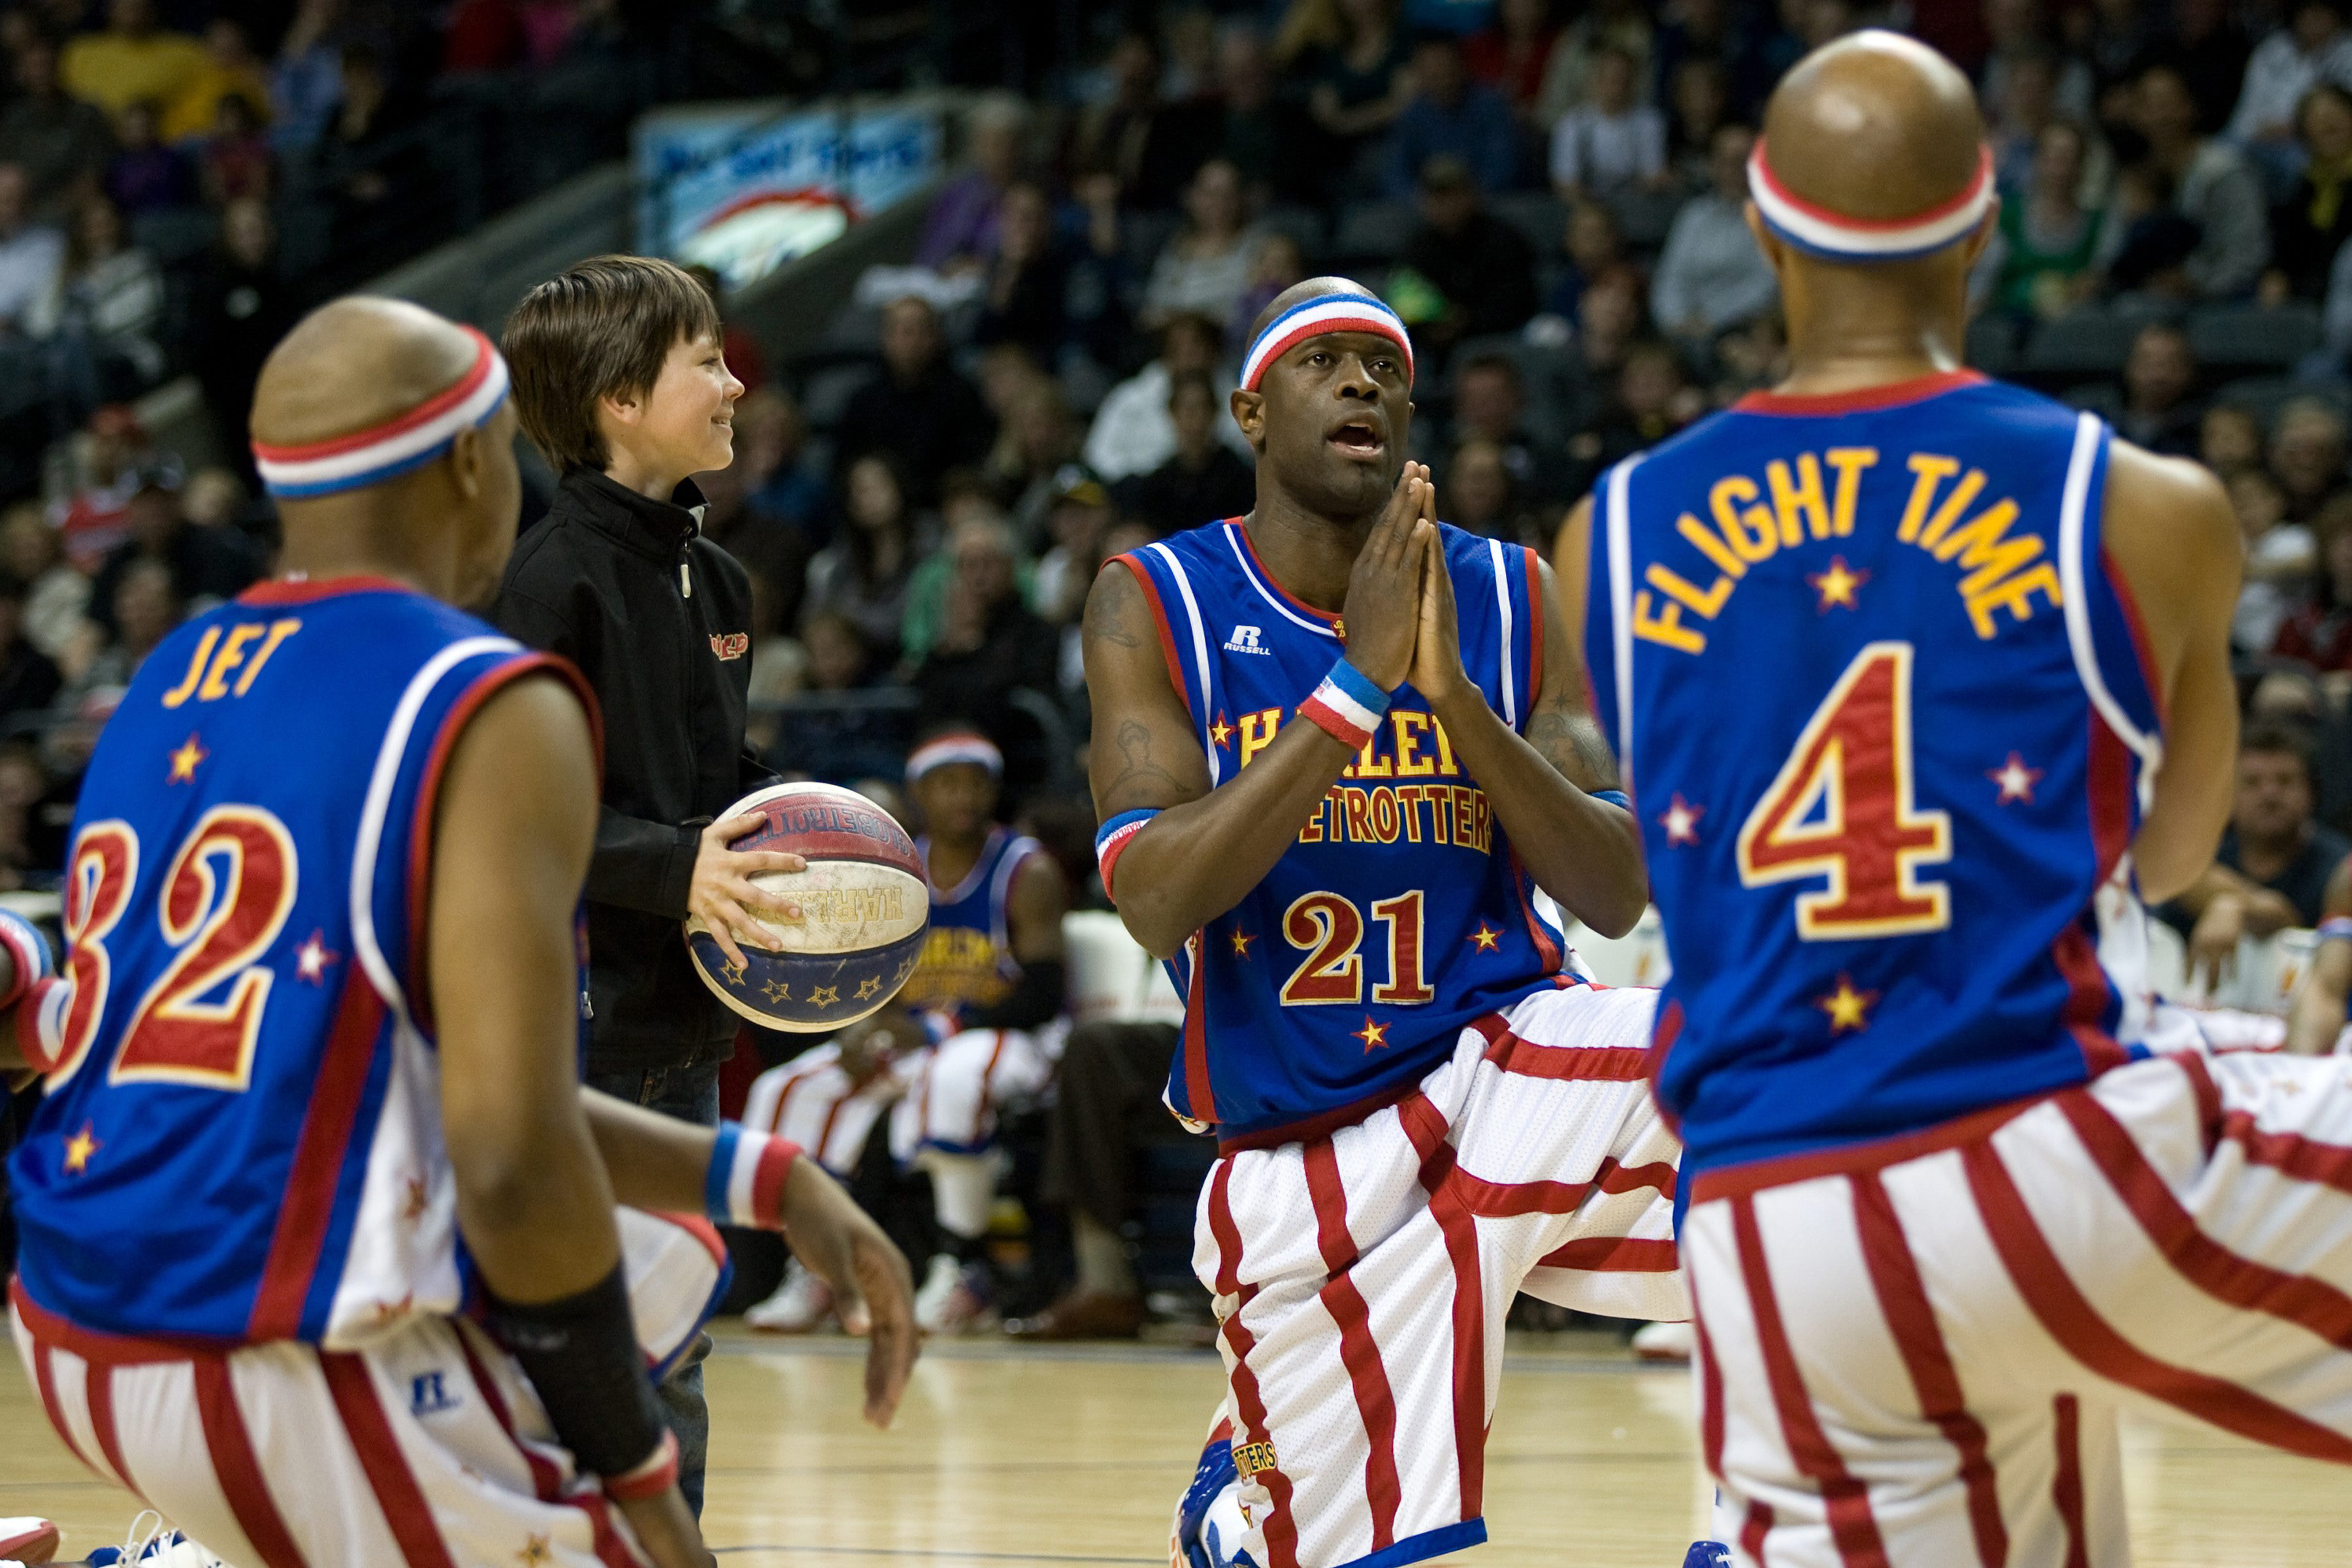 The Harlem Globetrotters at the John Labatt Centre in London, Ont., in 2013. THE CANADIAN PRESS/Mark Spowart.